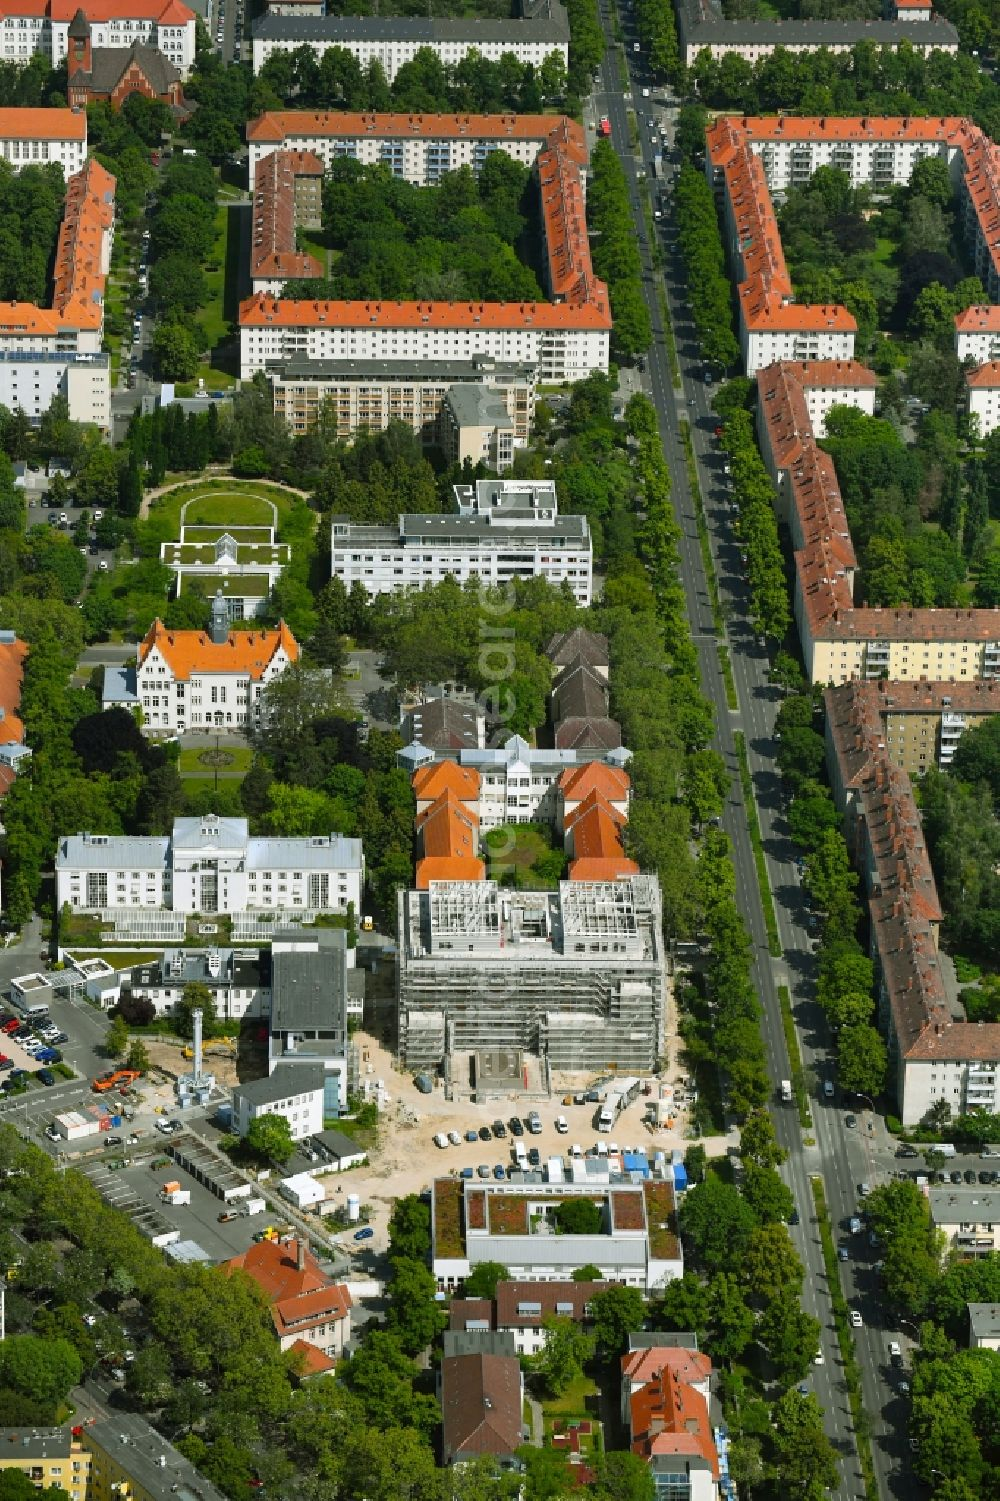 Aerial image Berlin - Construction site for a new extension to the hospital grounds Vivantes Auguste-Viktoria-Klinikum in the district Schoeneberg in Berlin, Germany